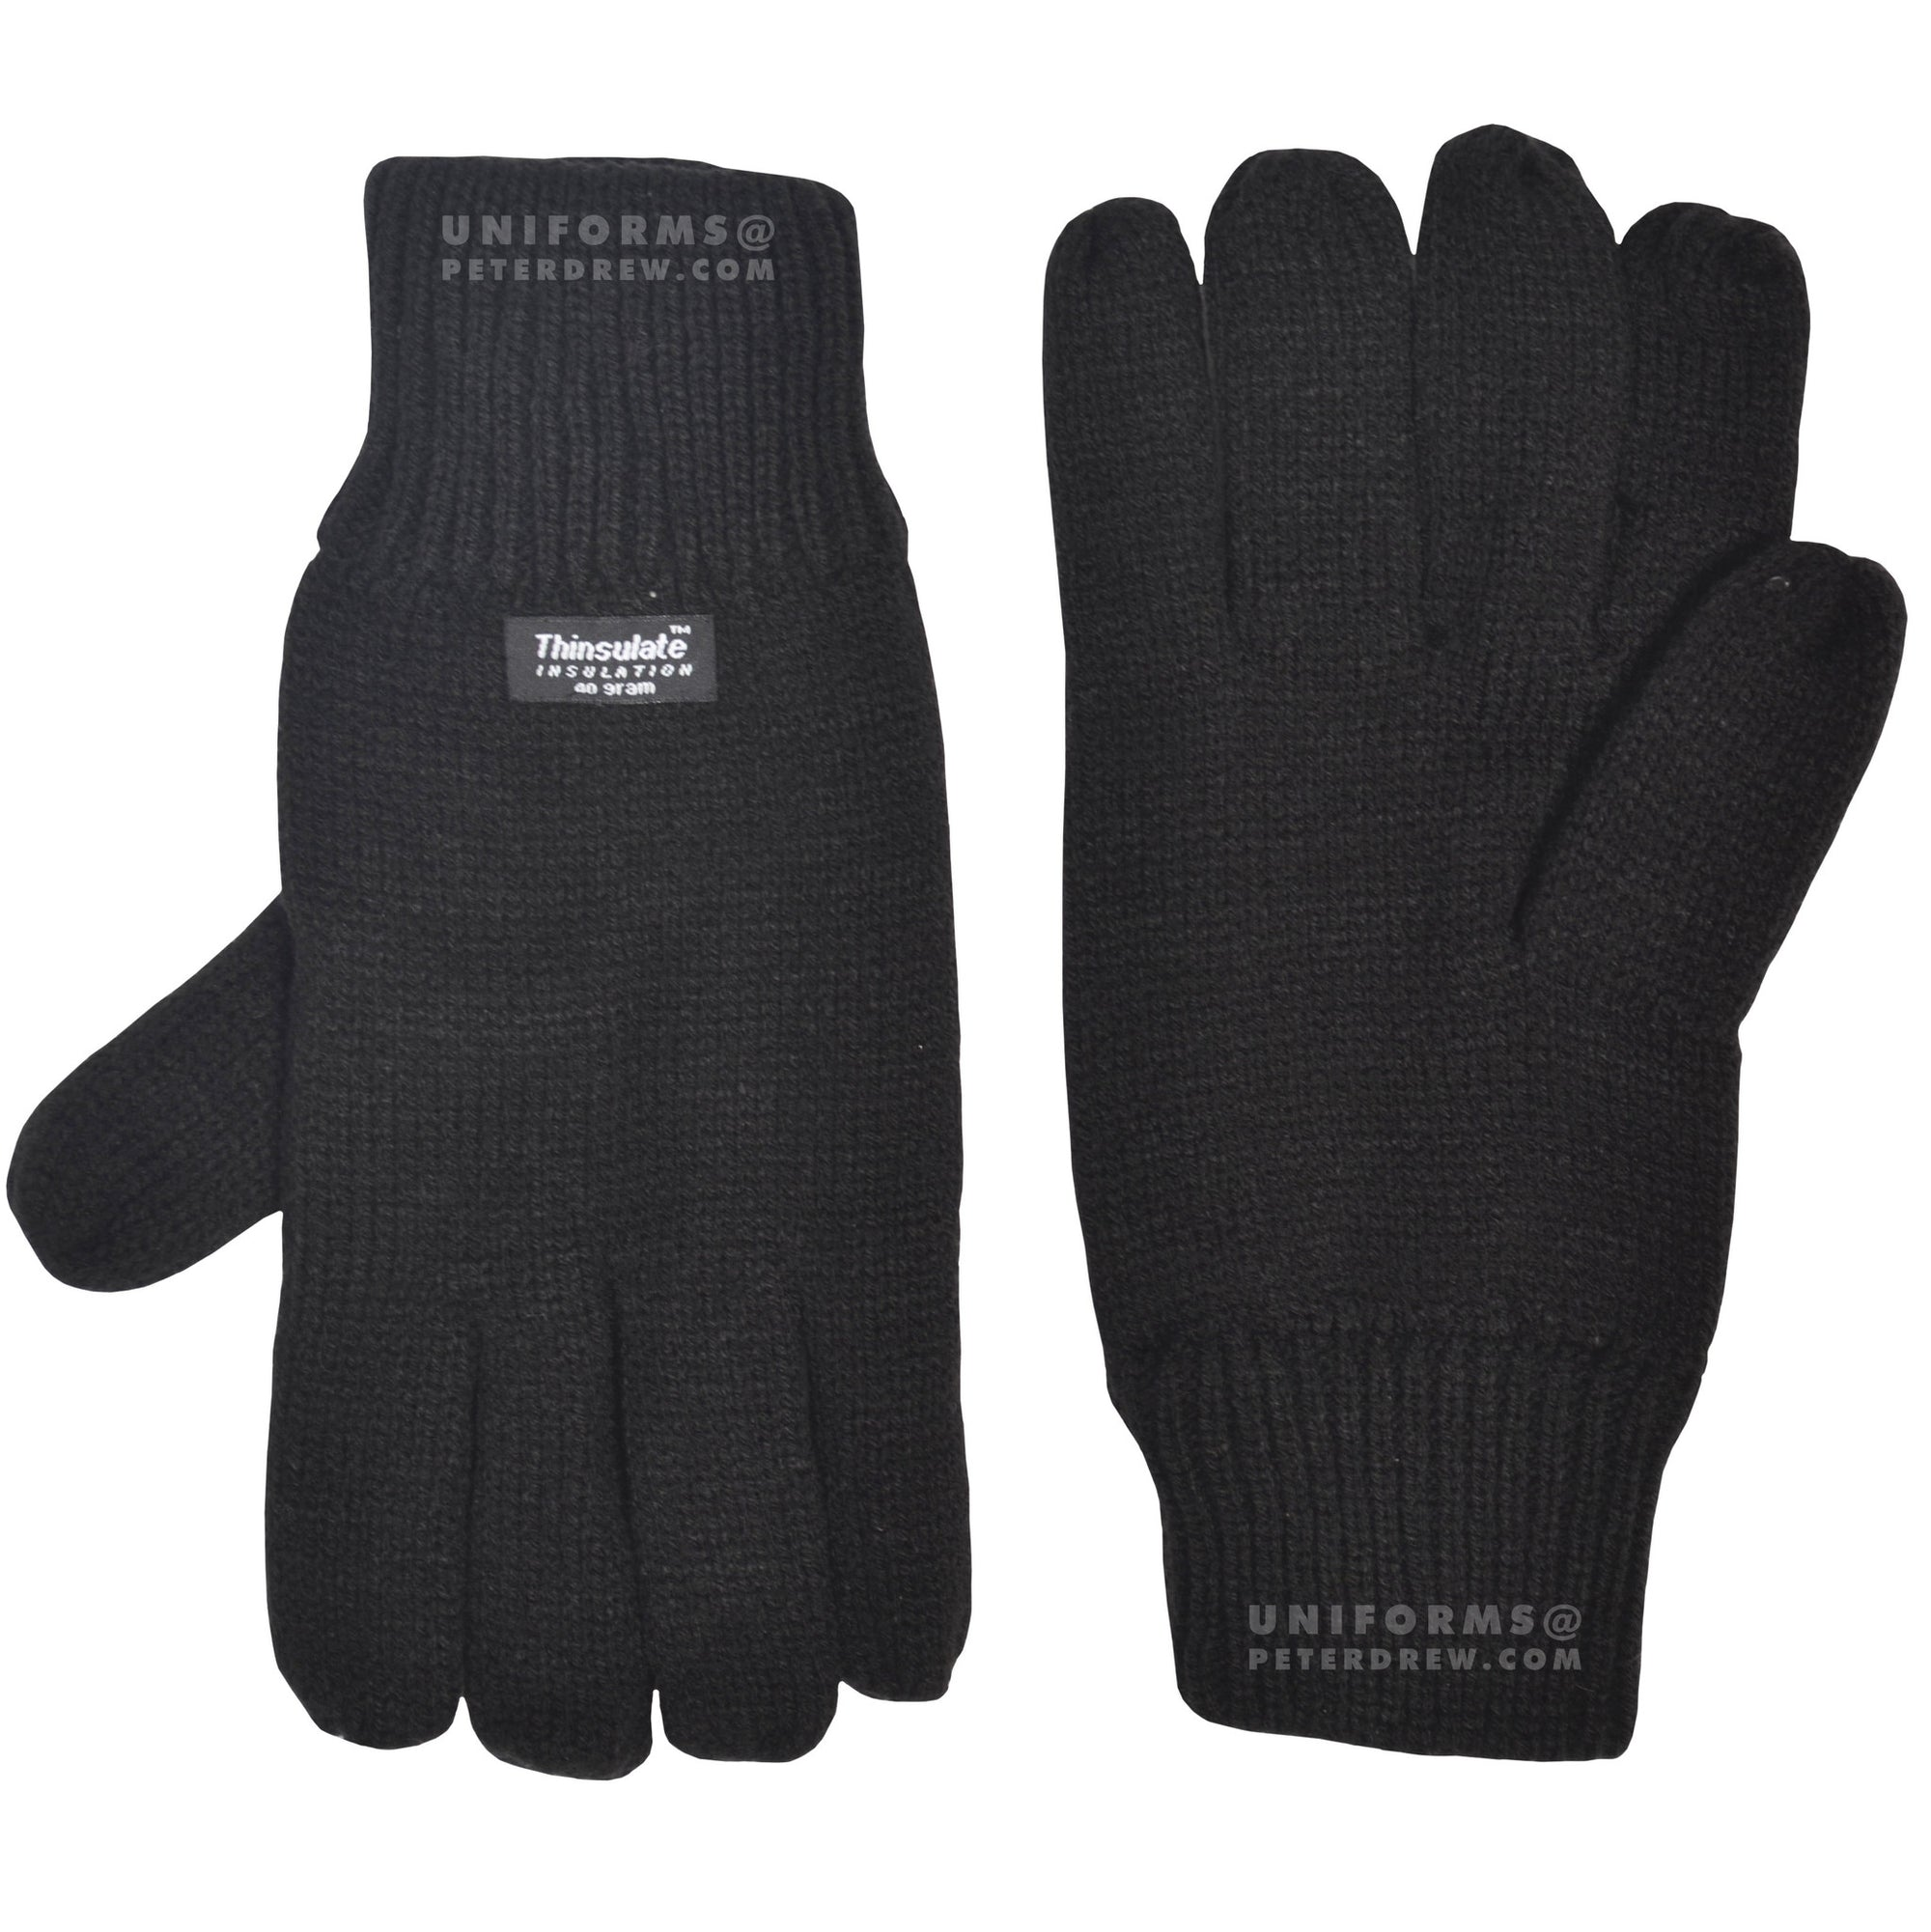 Woolly Gloves - peterdrew.com